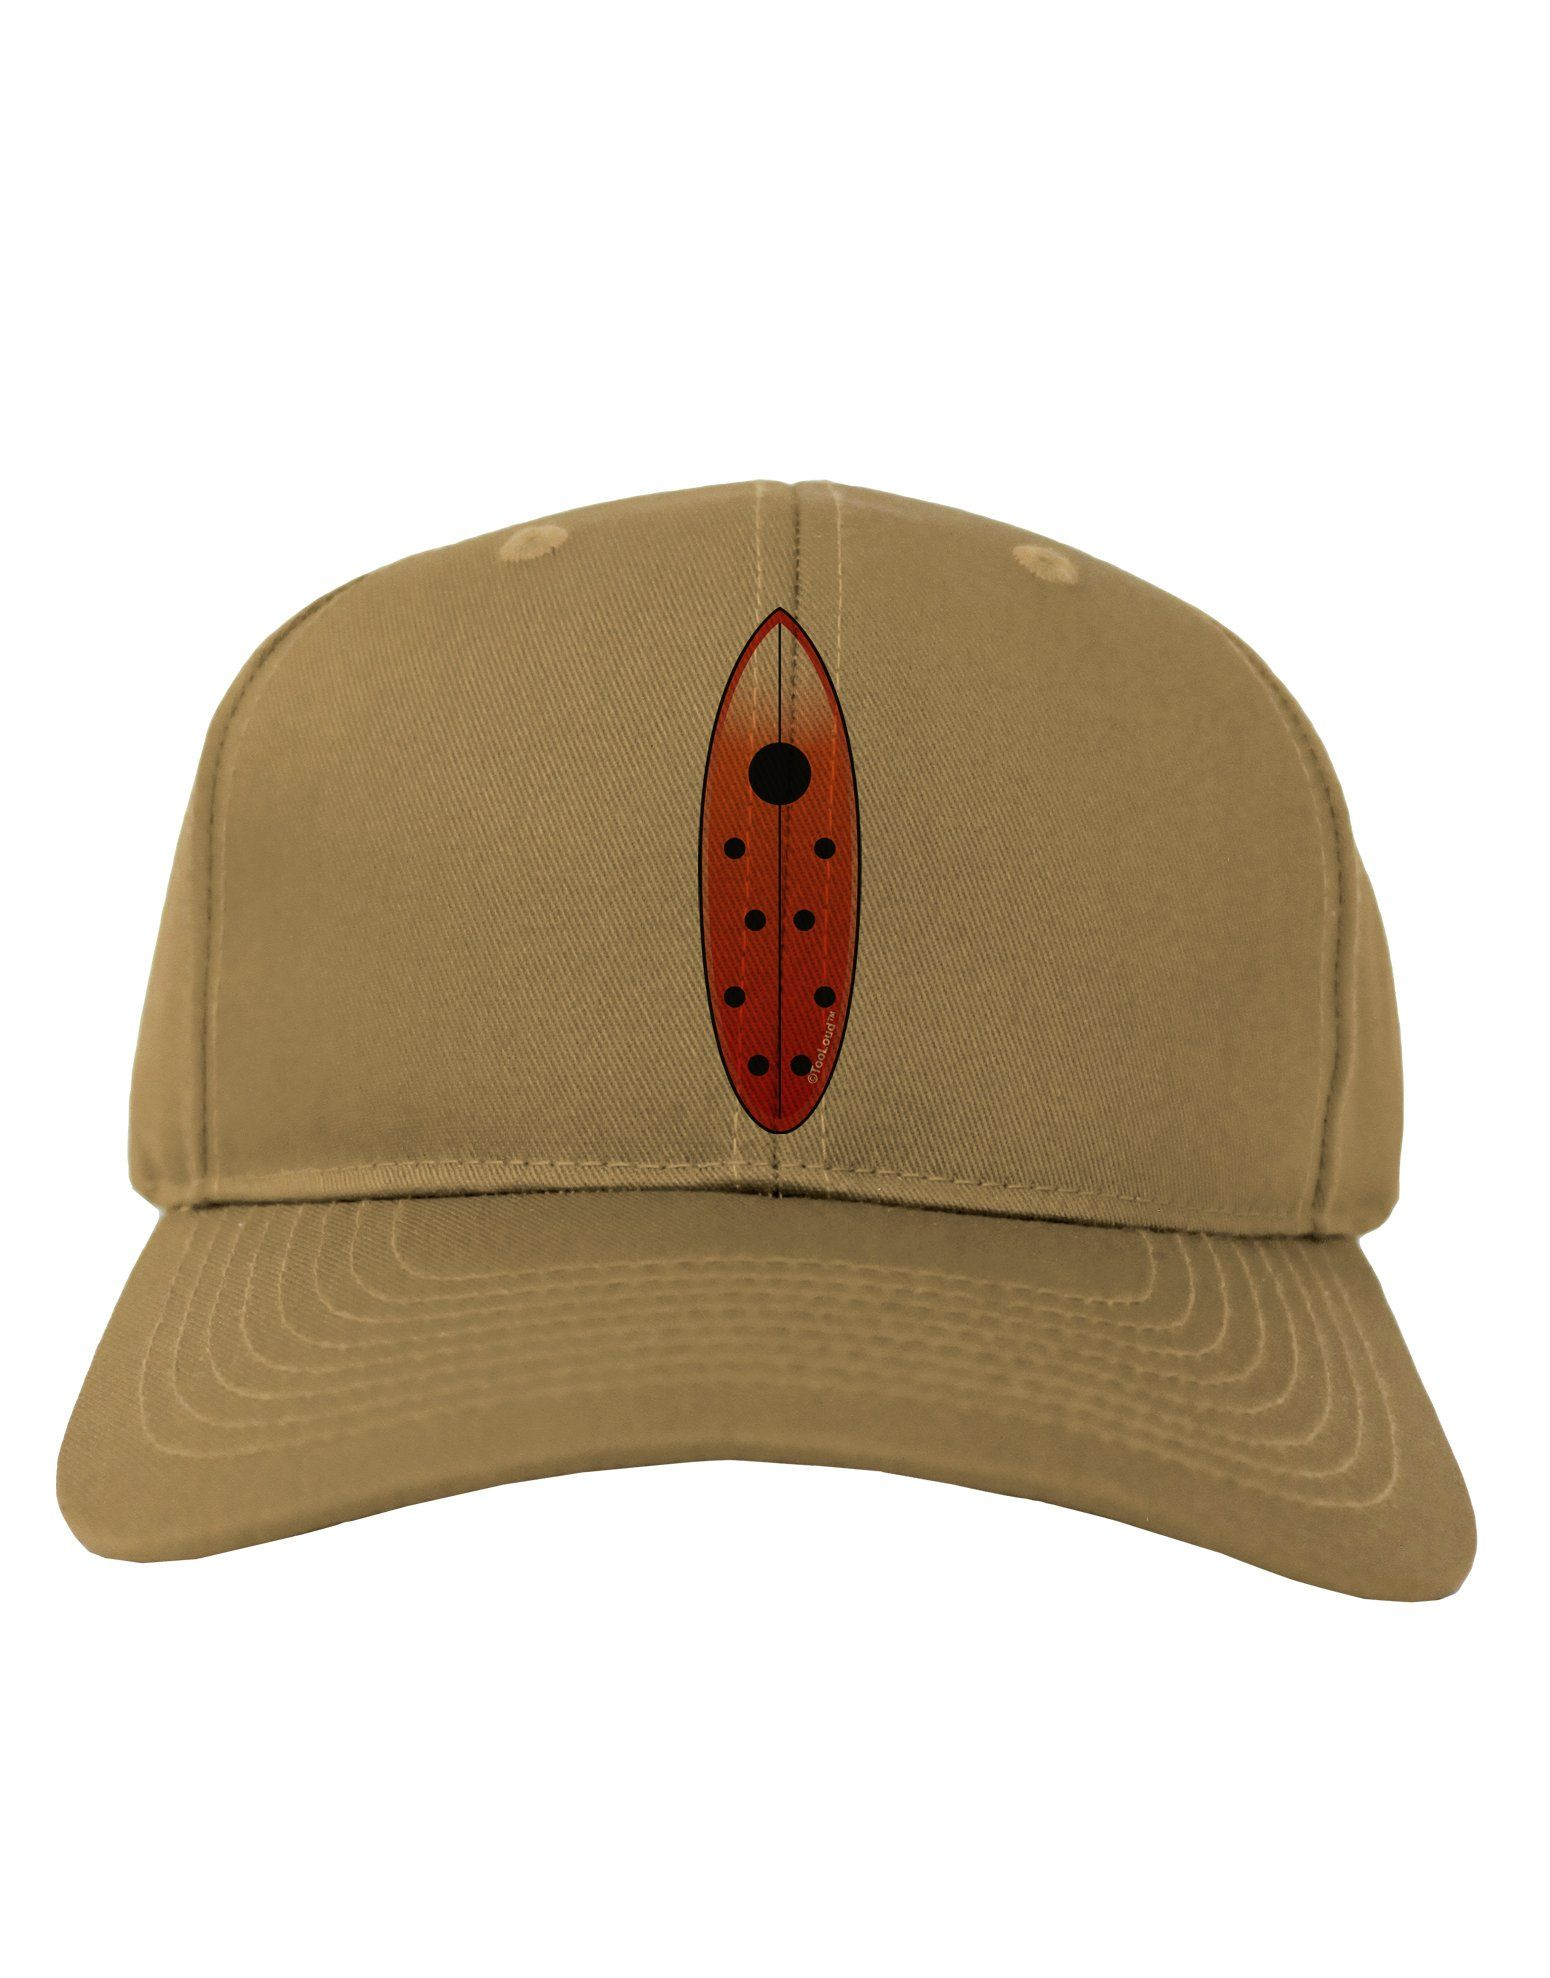 Ladybug Surfboard Adult Baseball Cap Hat by TooLoud